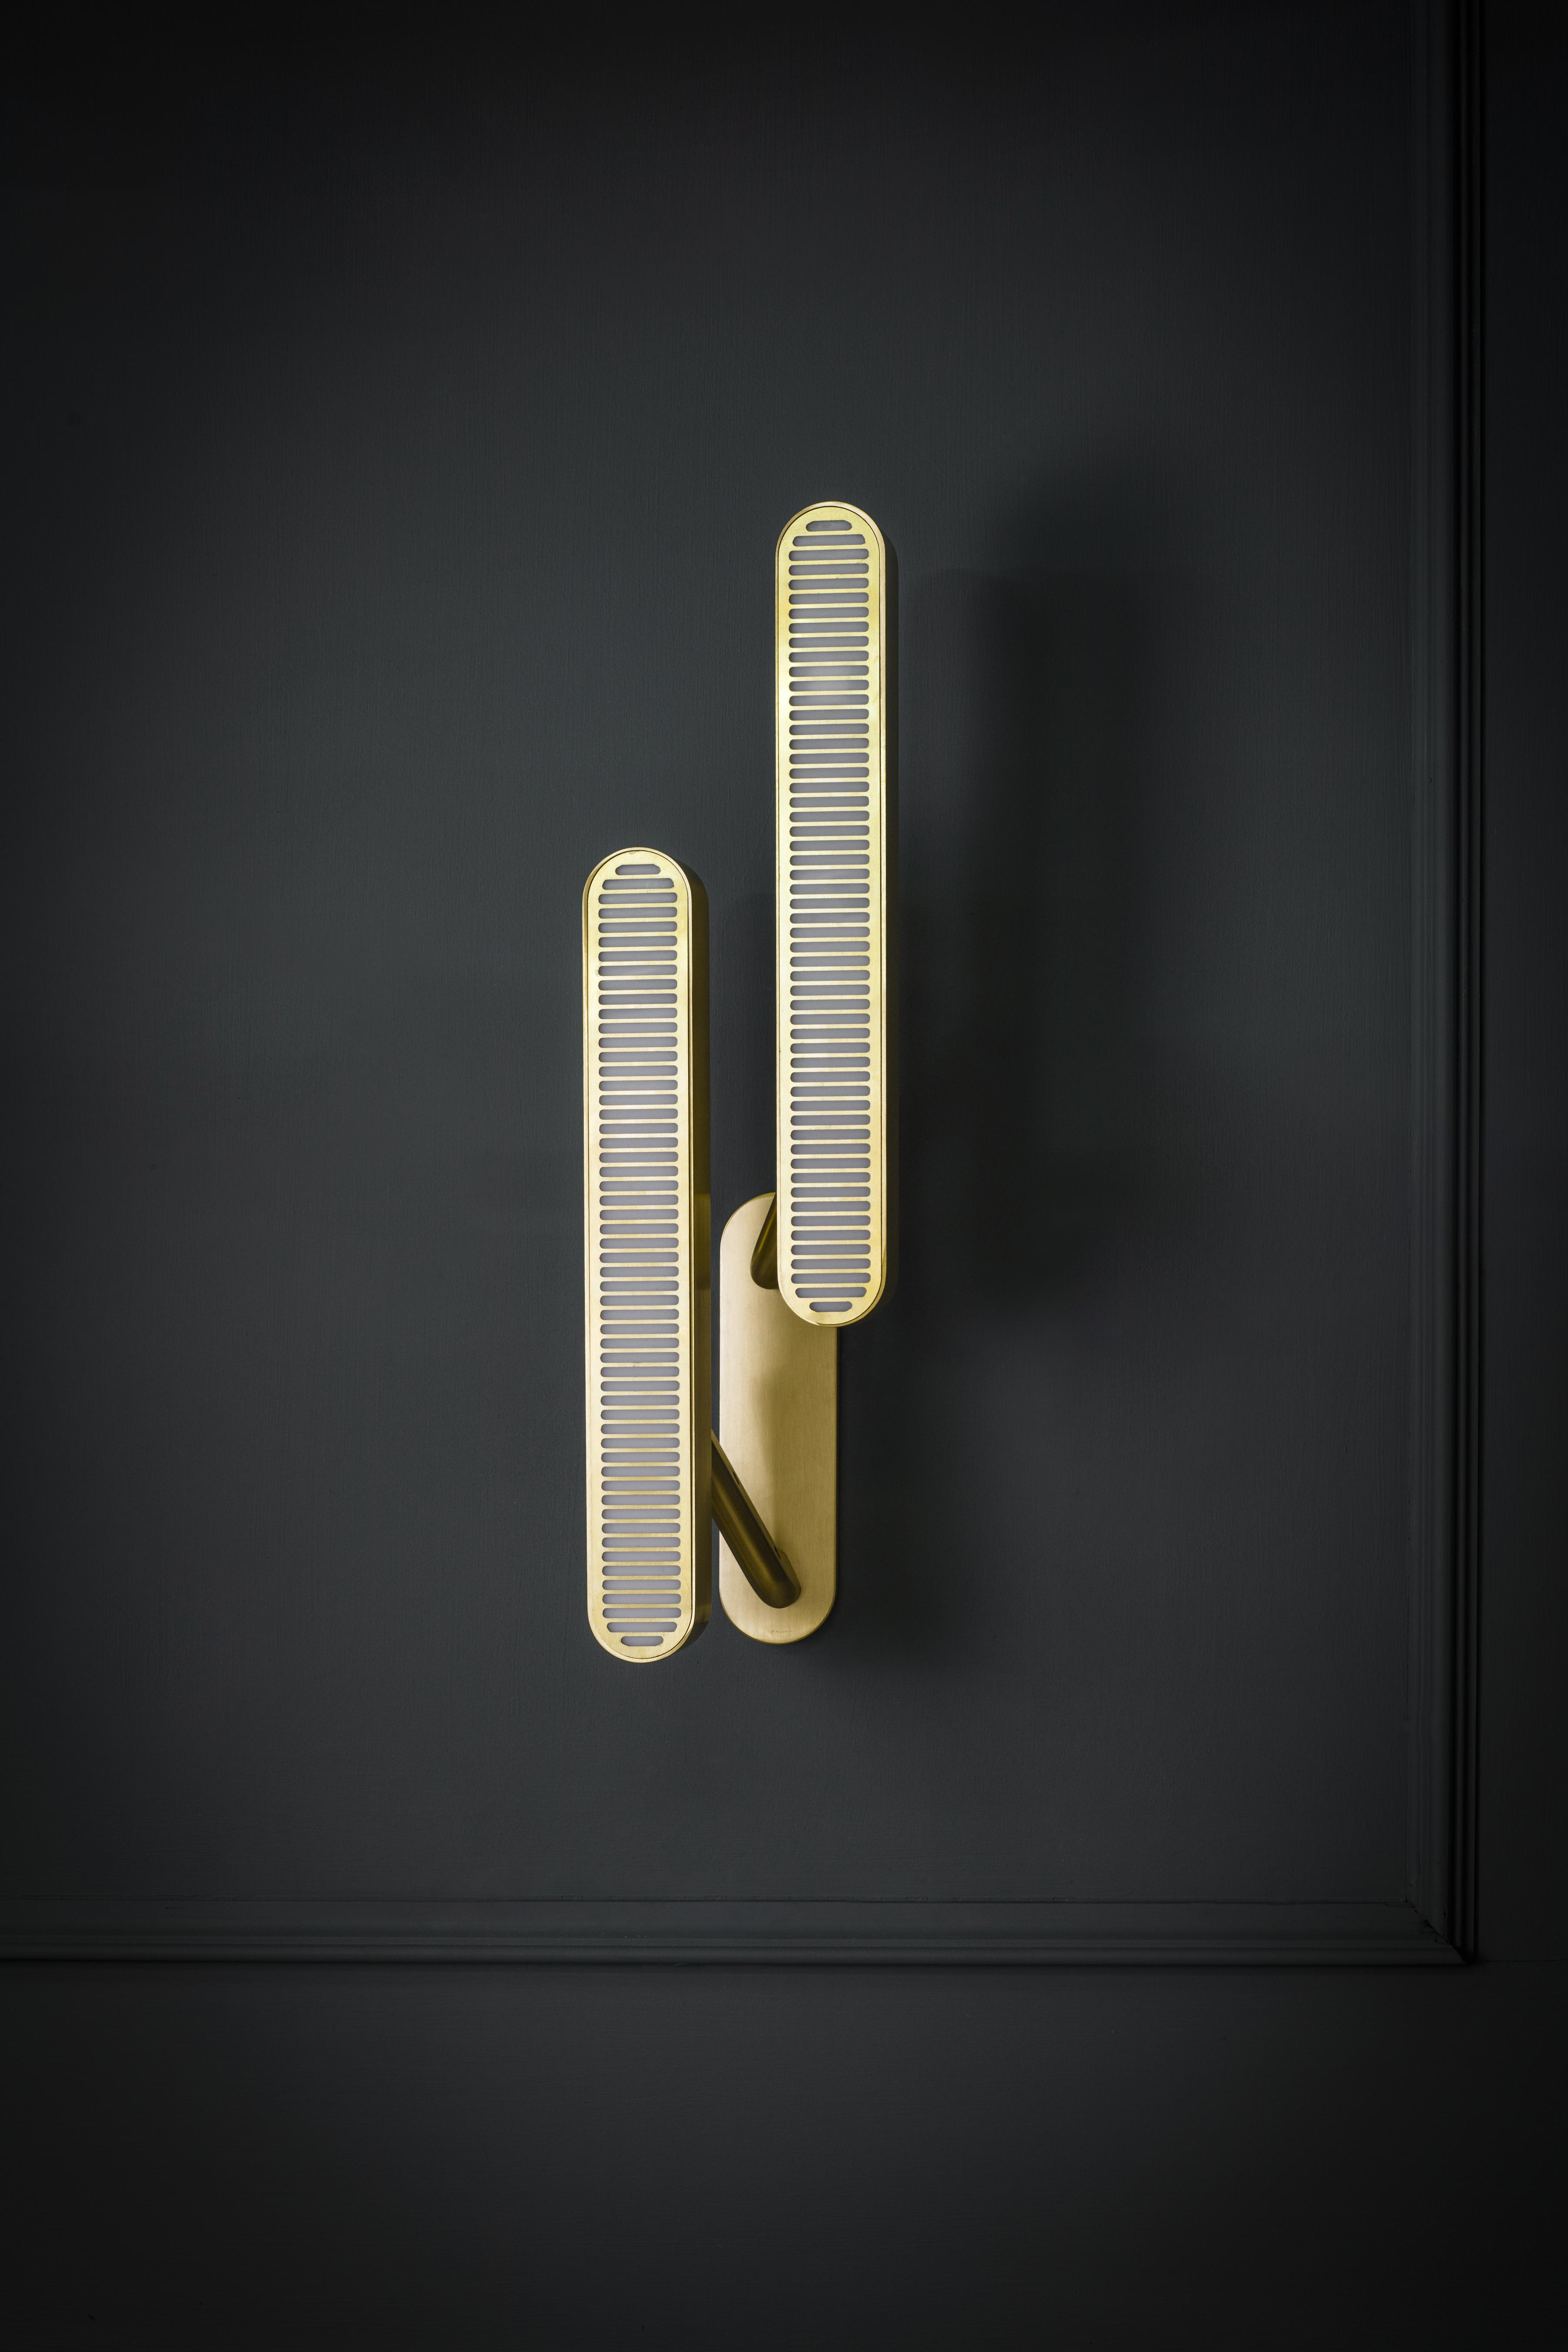 Colt Wall Light - Double - <p><span>With two slender opposing arms, the Colt Double Wall Light will lend sophistication to any room. Matching machined brass grills filter light from opal diffusers and echo the elegant curves of the brass wall plate. </p> <p></span></p>  | Matter of Stuff